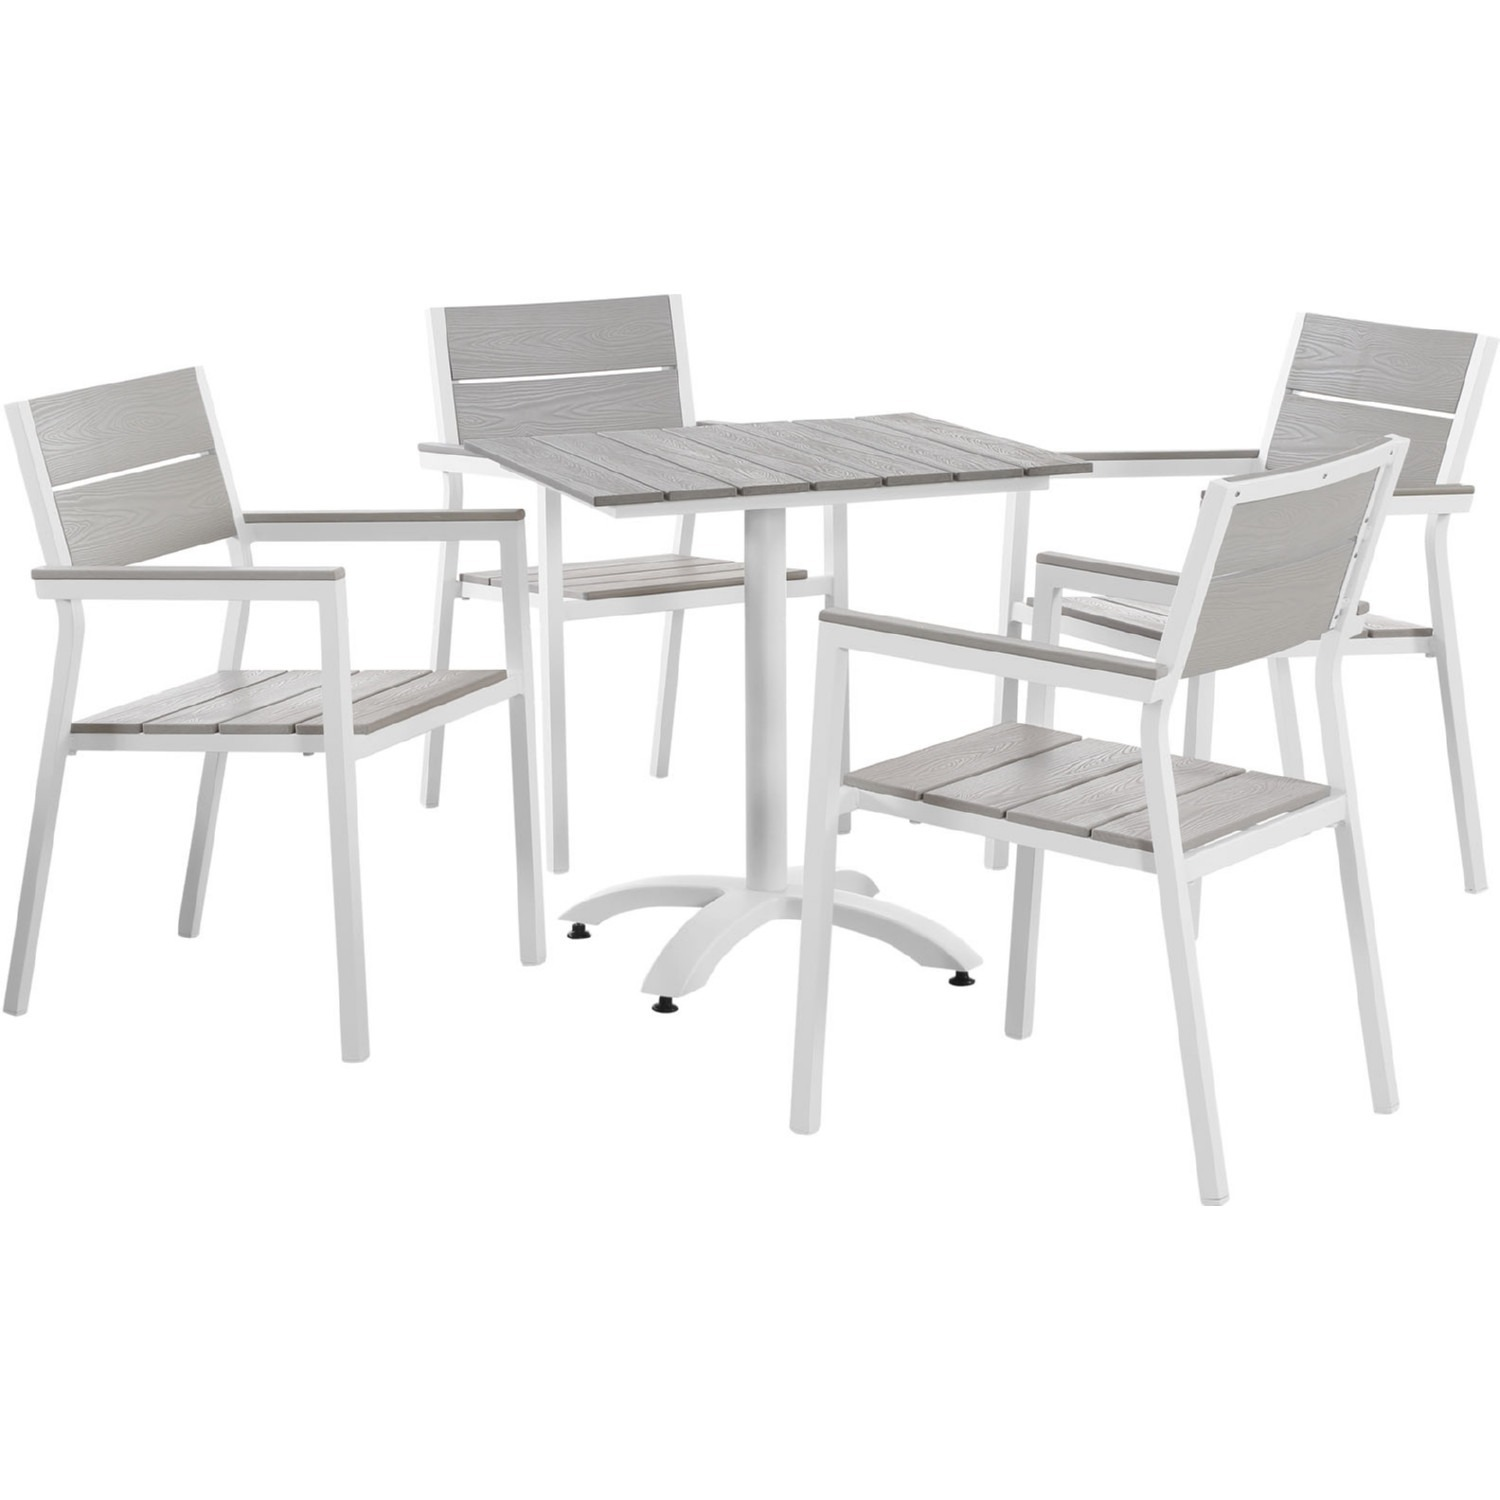 5-Piece Dining Set In Light Gray Wood Finish - image-0